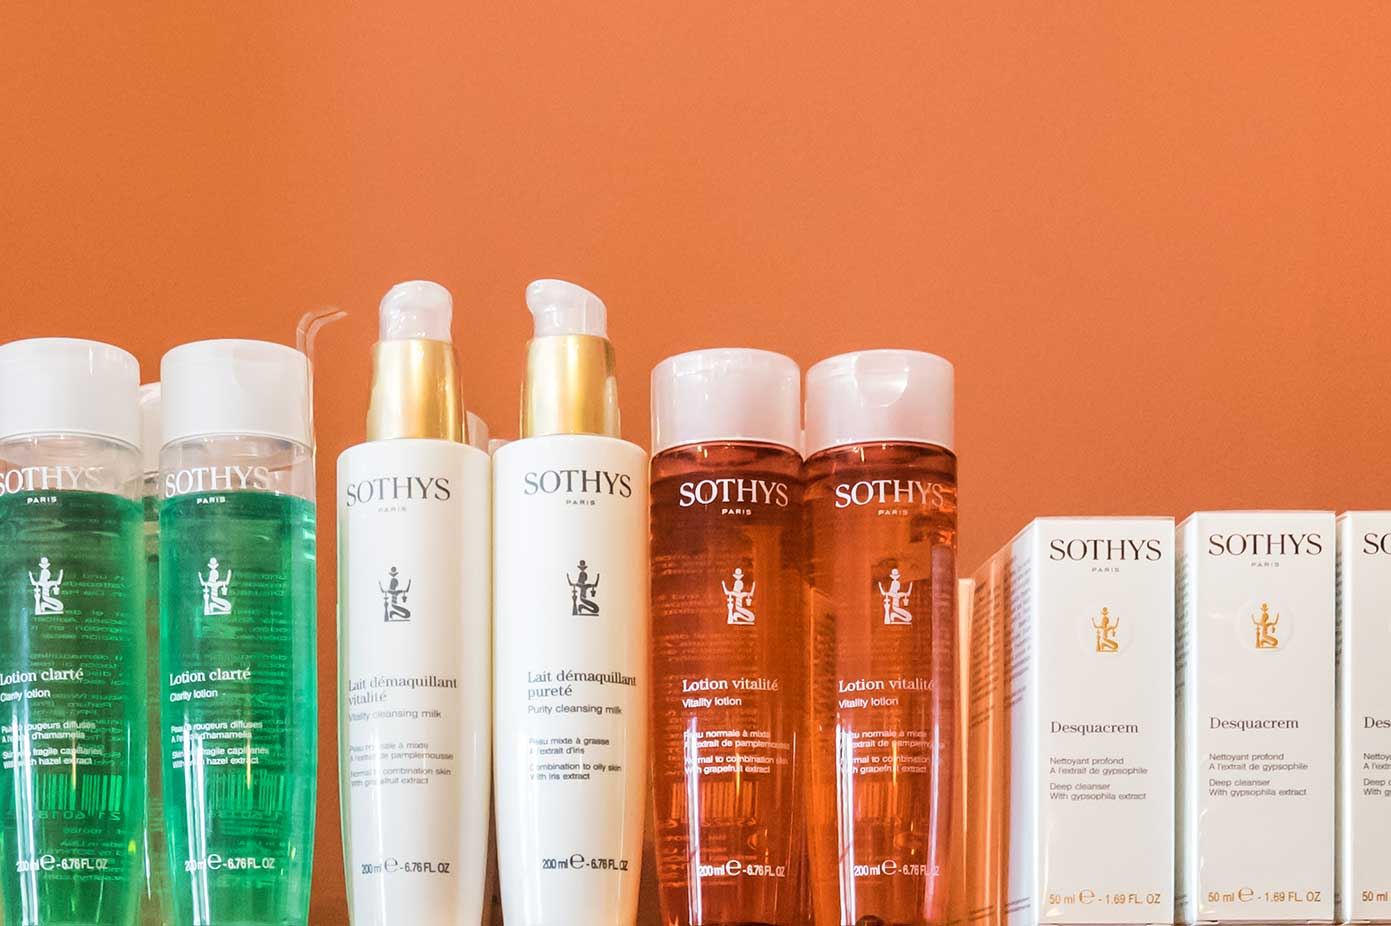 Sothys Skin Care Products